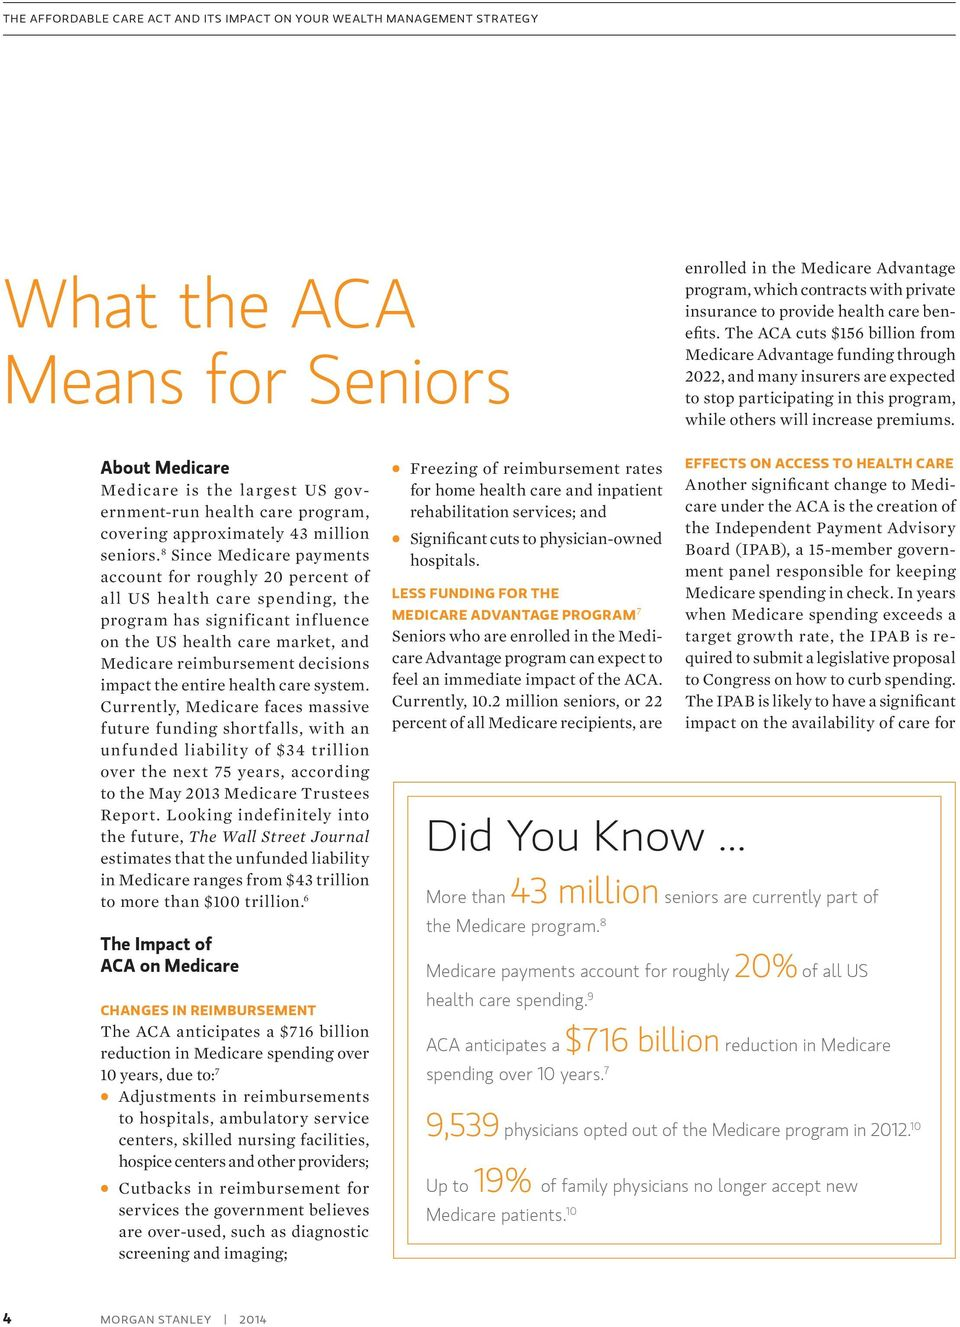 About Medicare Medicare is the largest US government-run health care program, covering approximately 43 million seniors.